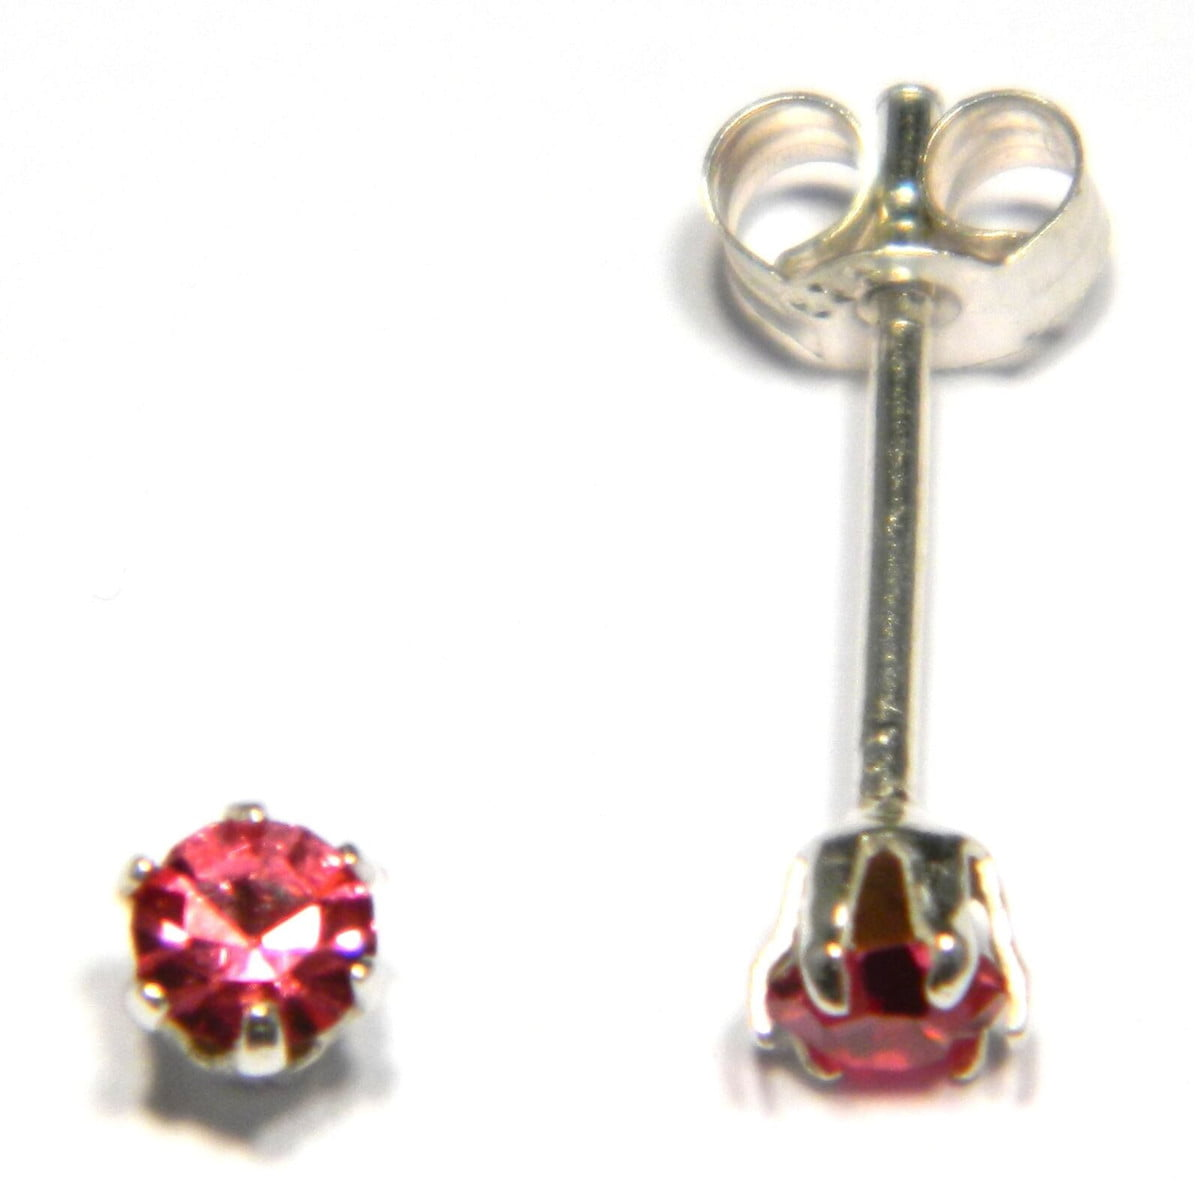 3 mm pink coloured crystal stud round solitaire earrings in sterling silver